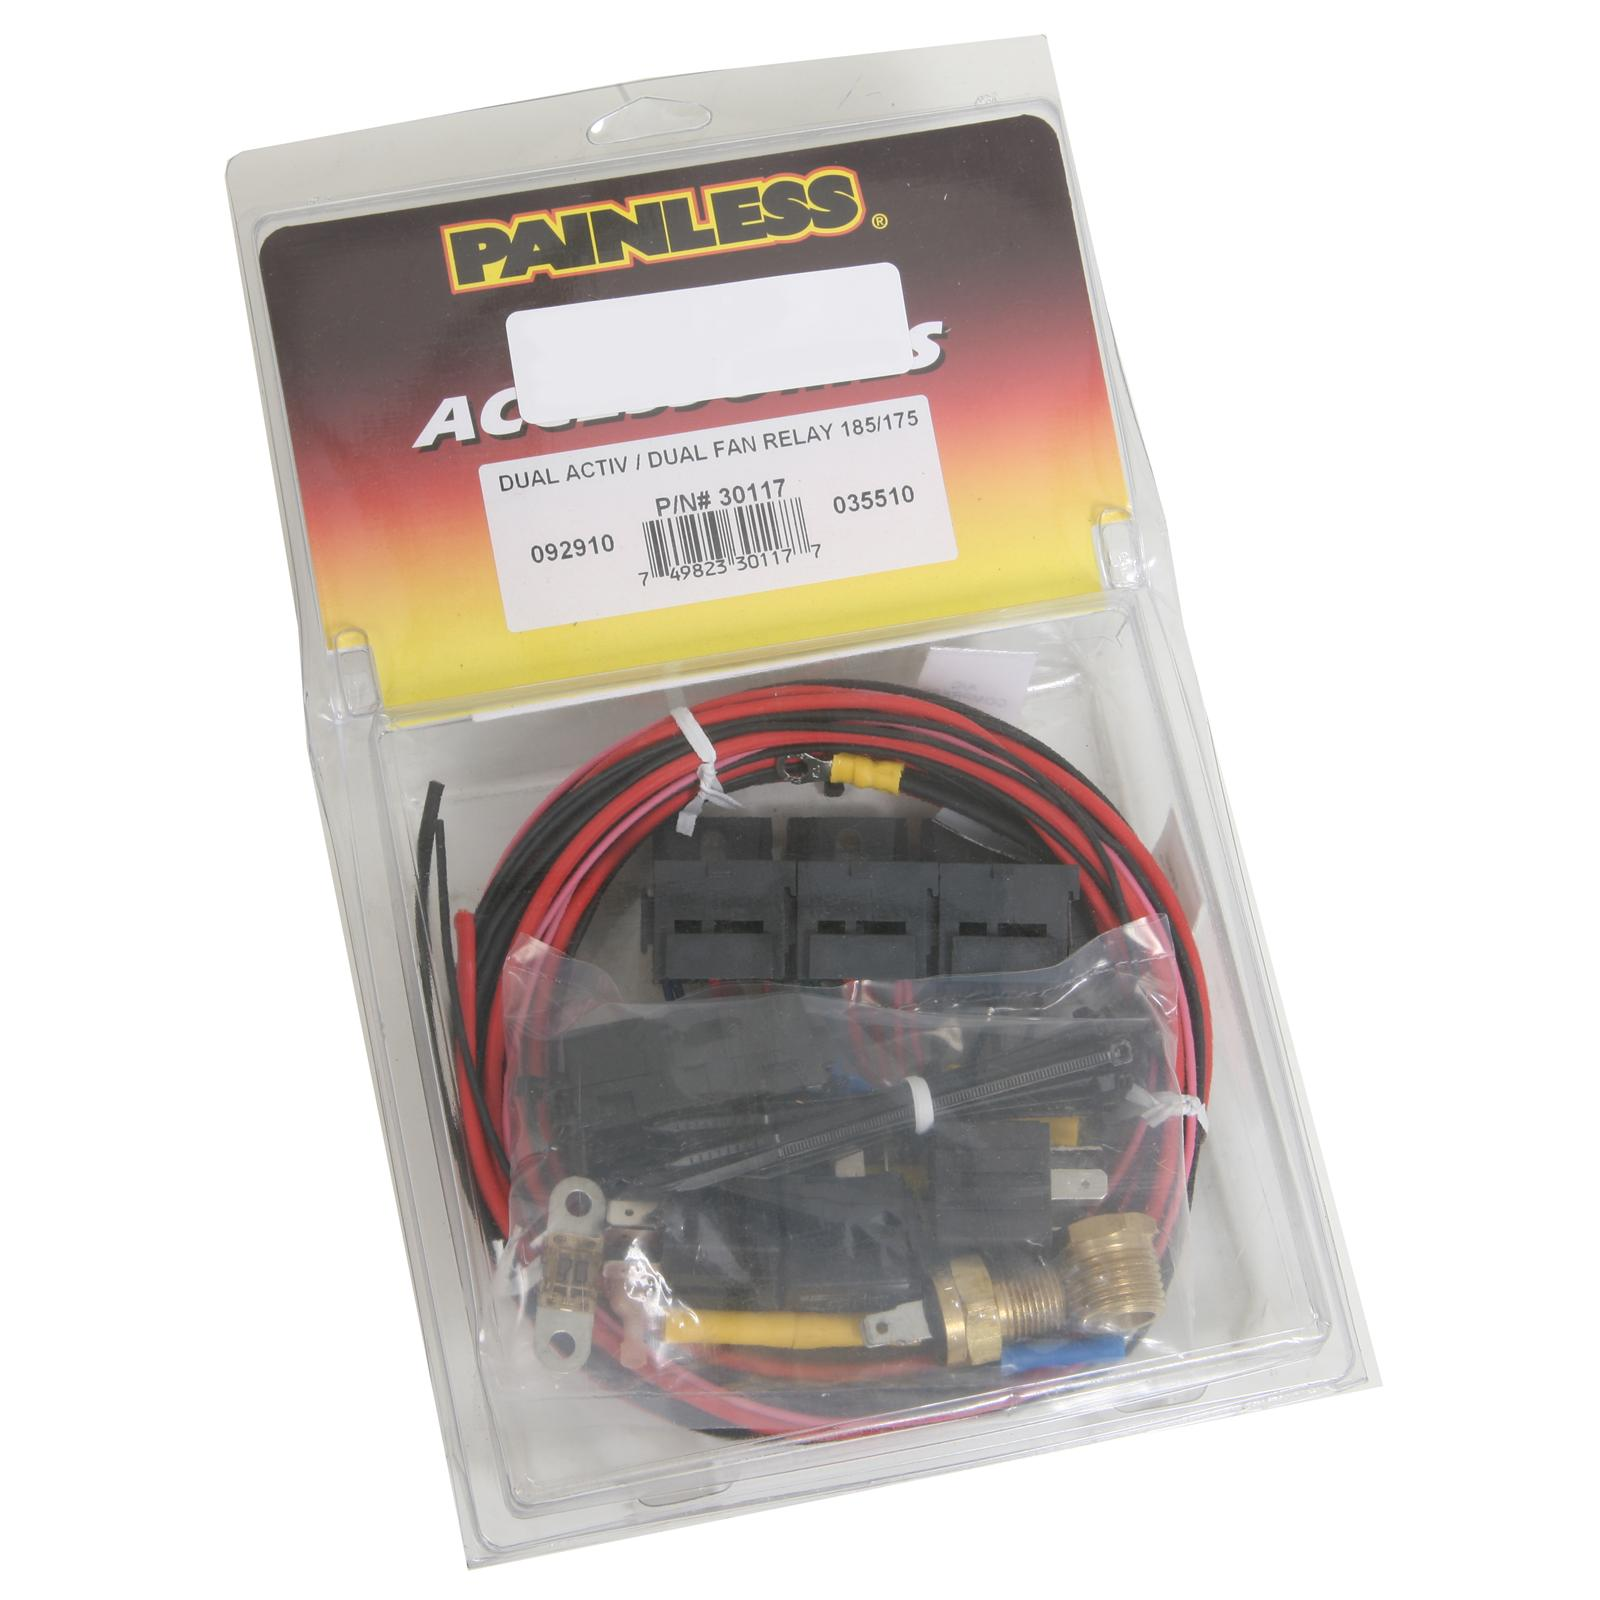 Painless Performance Dual Activation Electric Fan Relay Kits 30117 - Free  Shipping on Orders Over $49 at Summit Racing